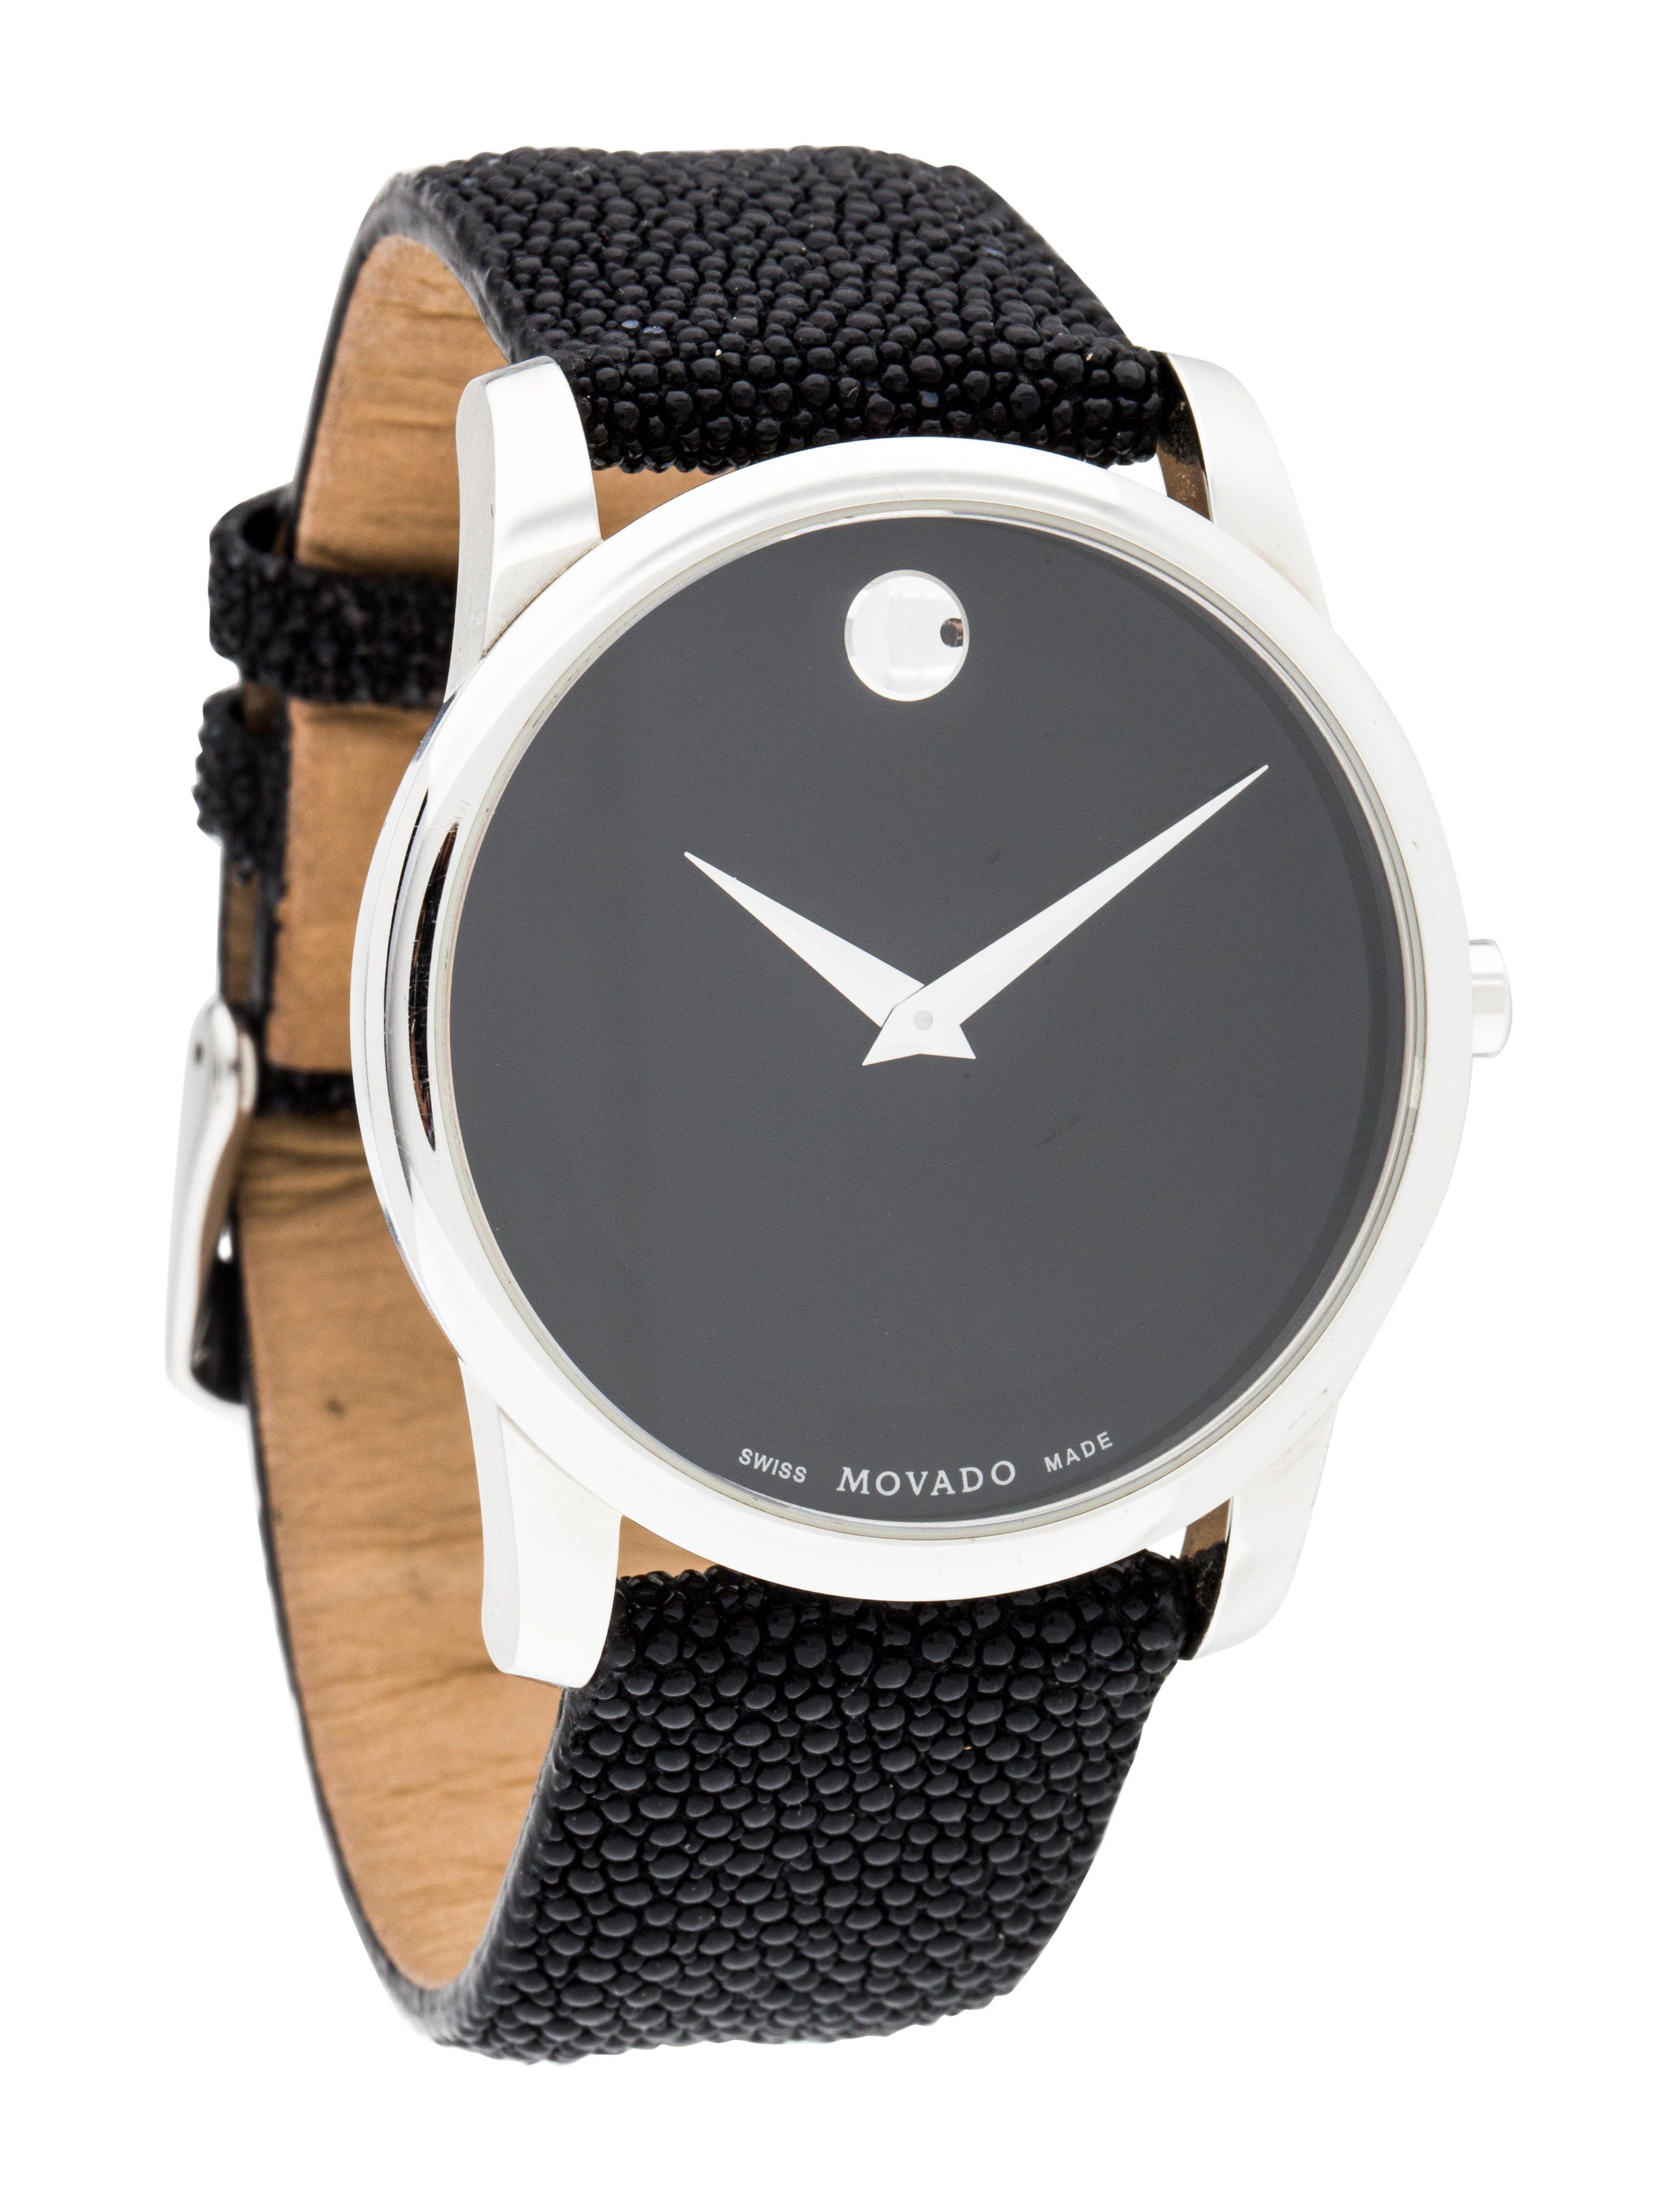 ba3130212 Stainless steel 40mm Movado Museum watch featuring a quartz movement,  smooth bezel, matte black dial and black stingray strap with tang buckle.  Includes d